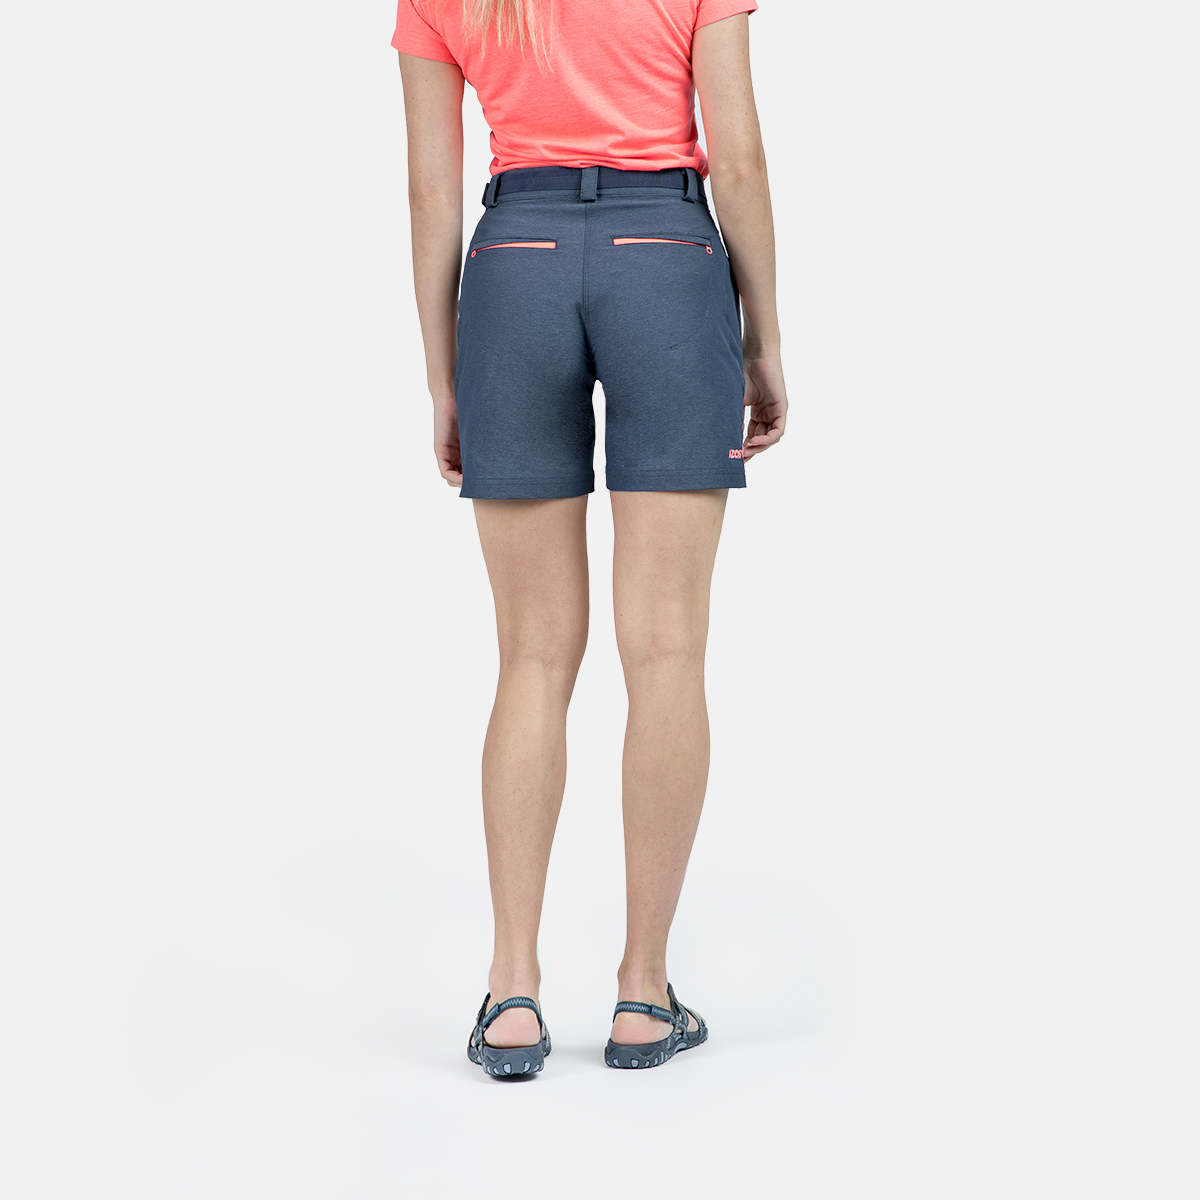 WOMAN'S BUBAL SHORT BLUE